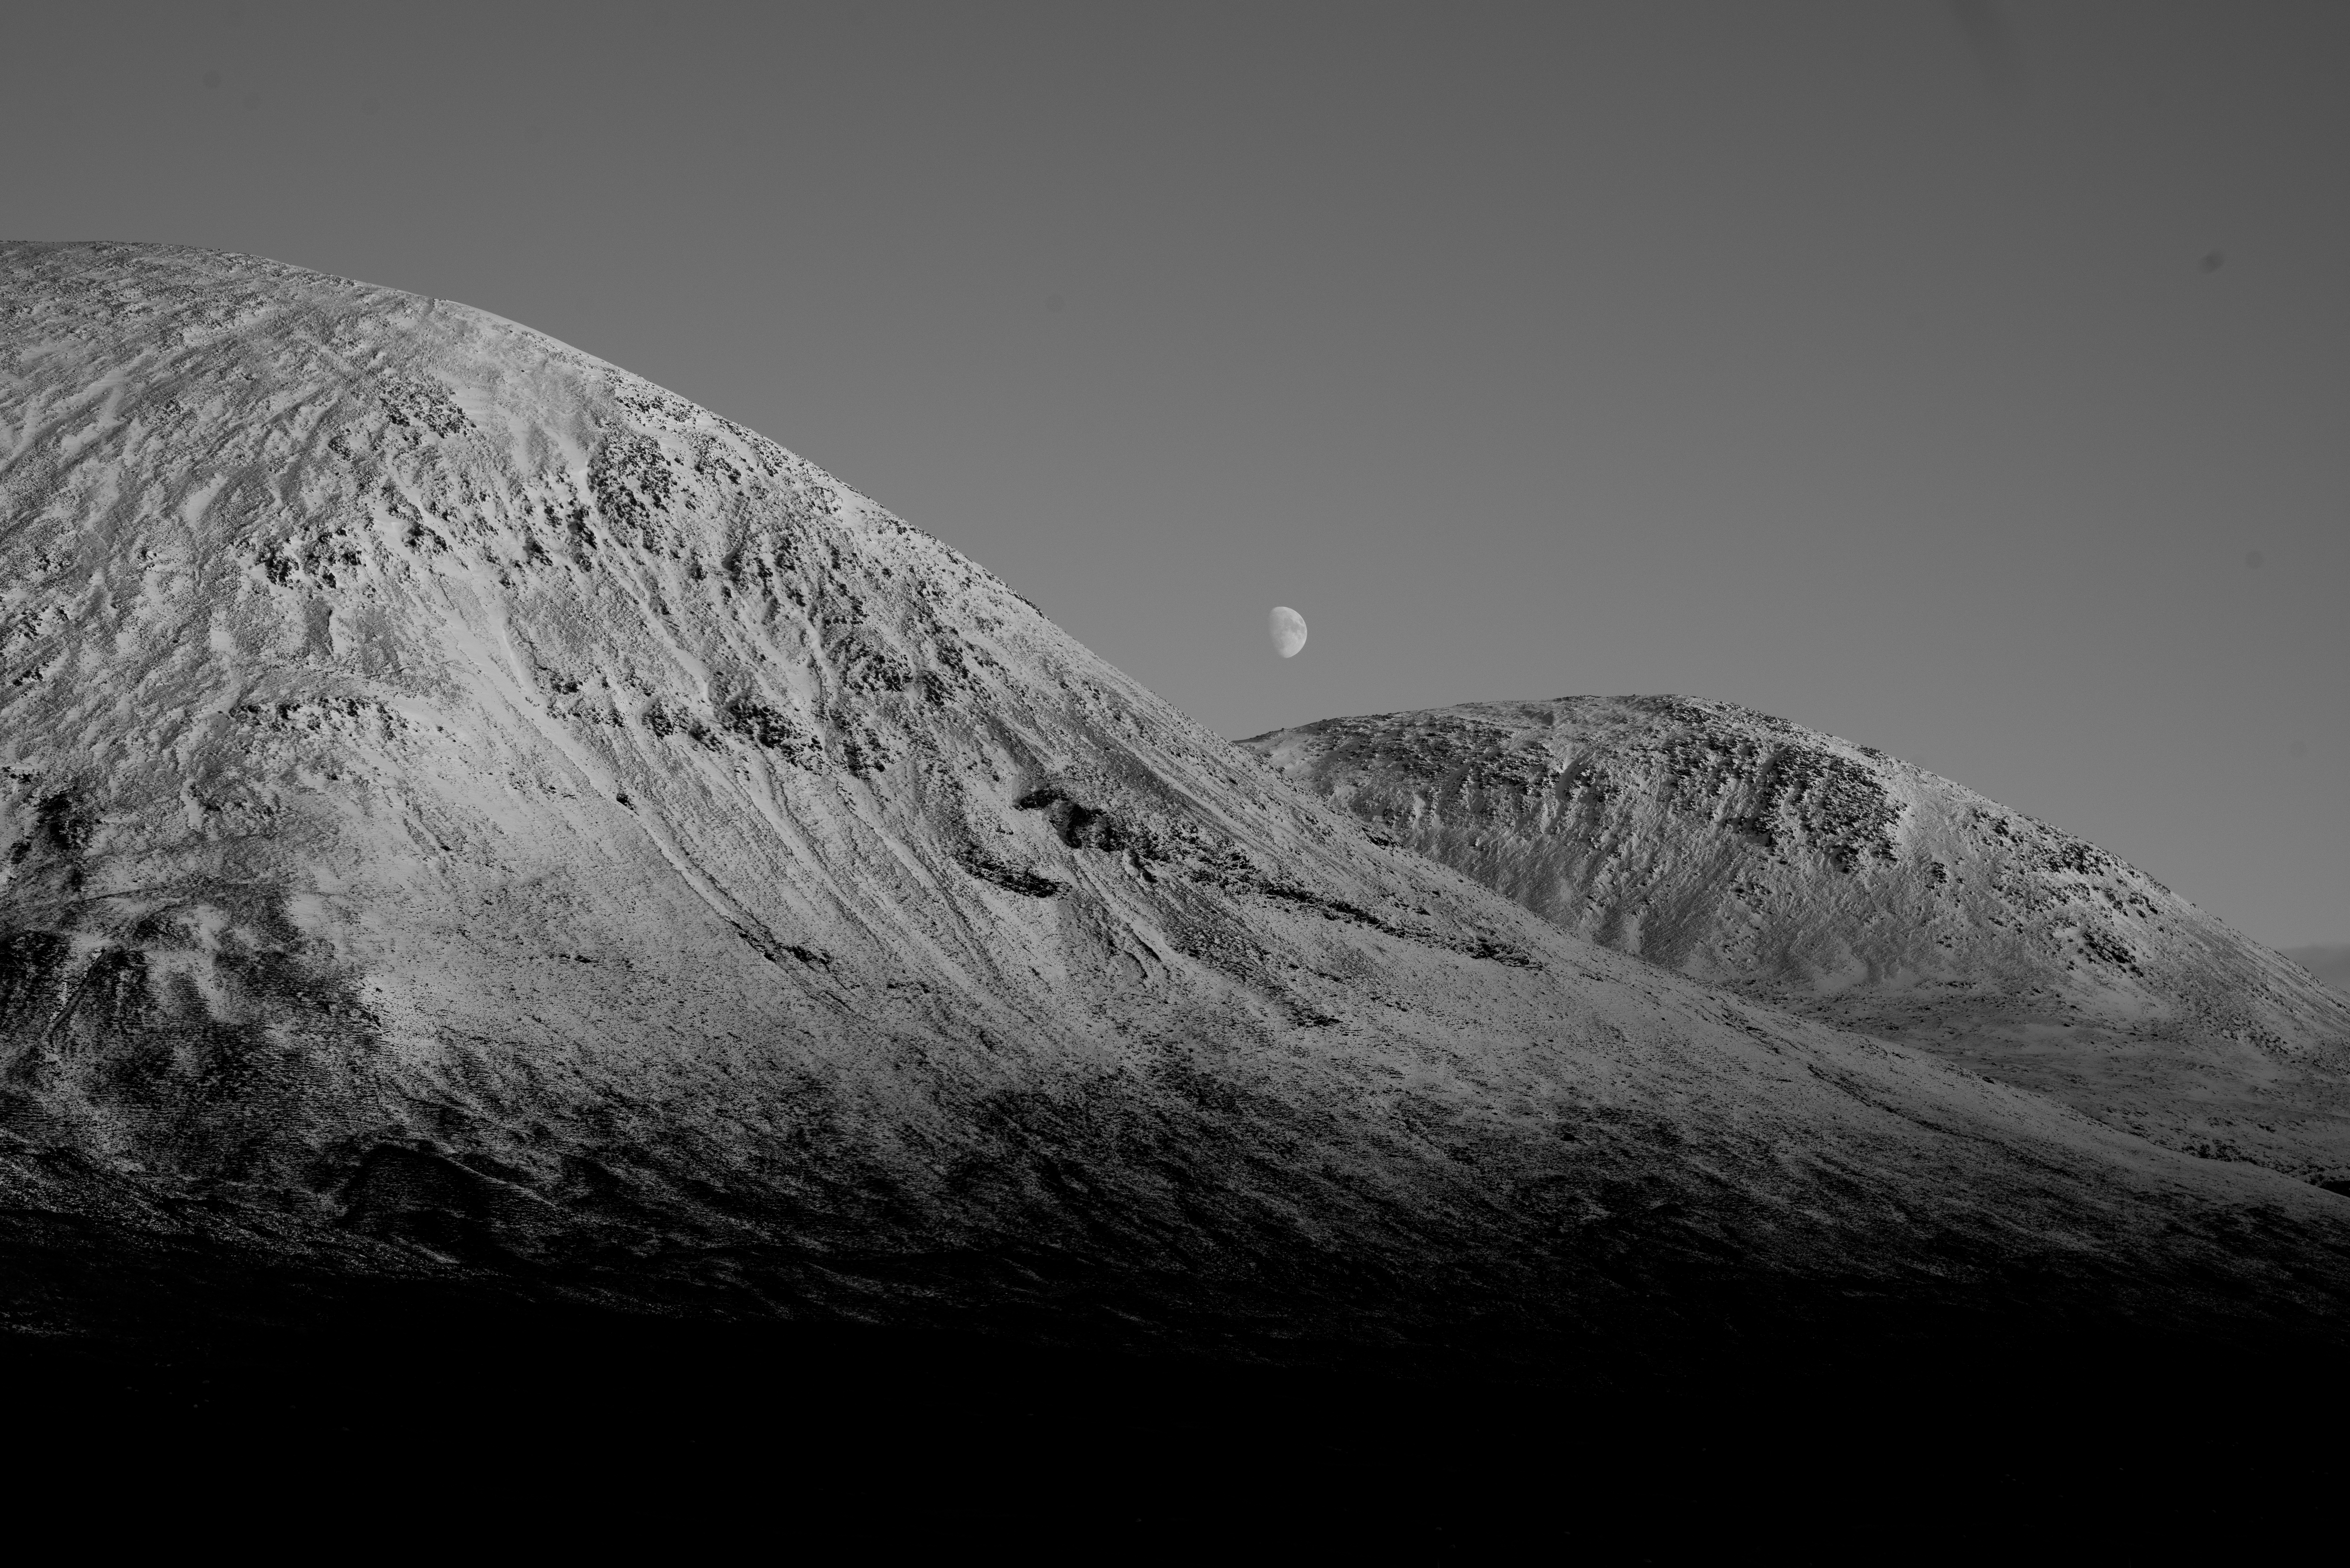 A waxing moon rises over two peaks on The Isle of Skye.